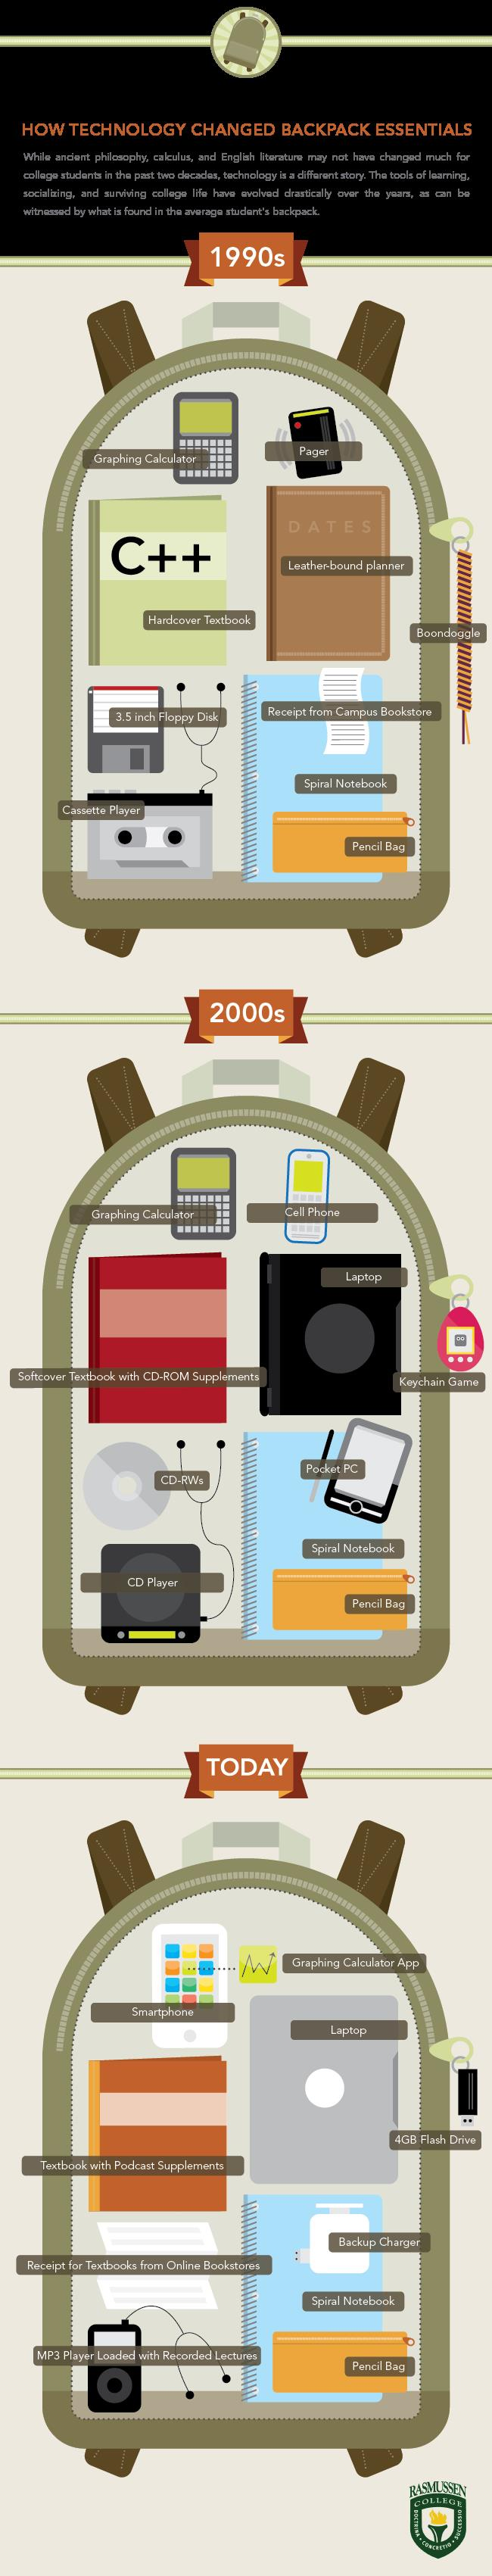 evolution-of-the-backpack